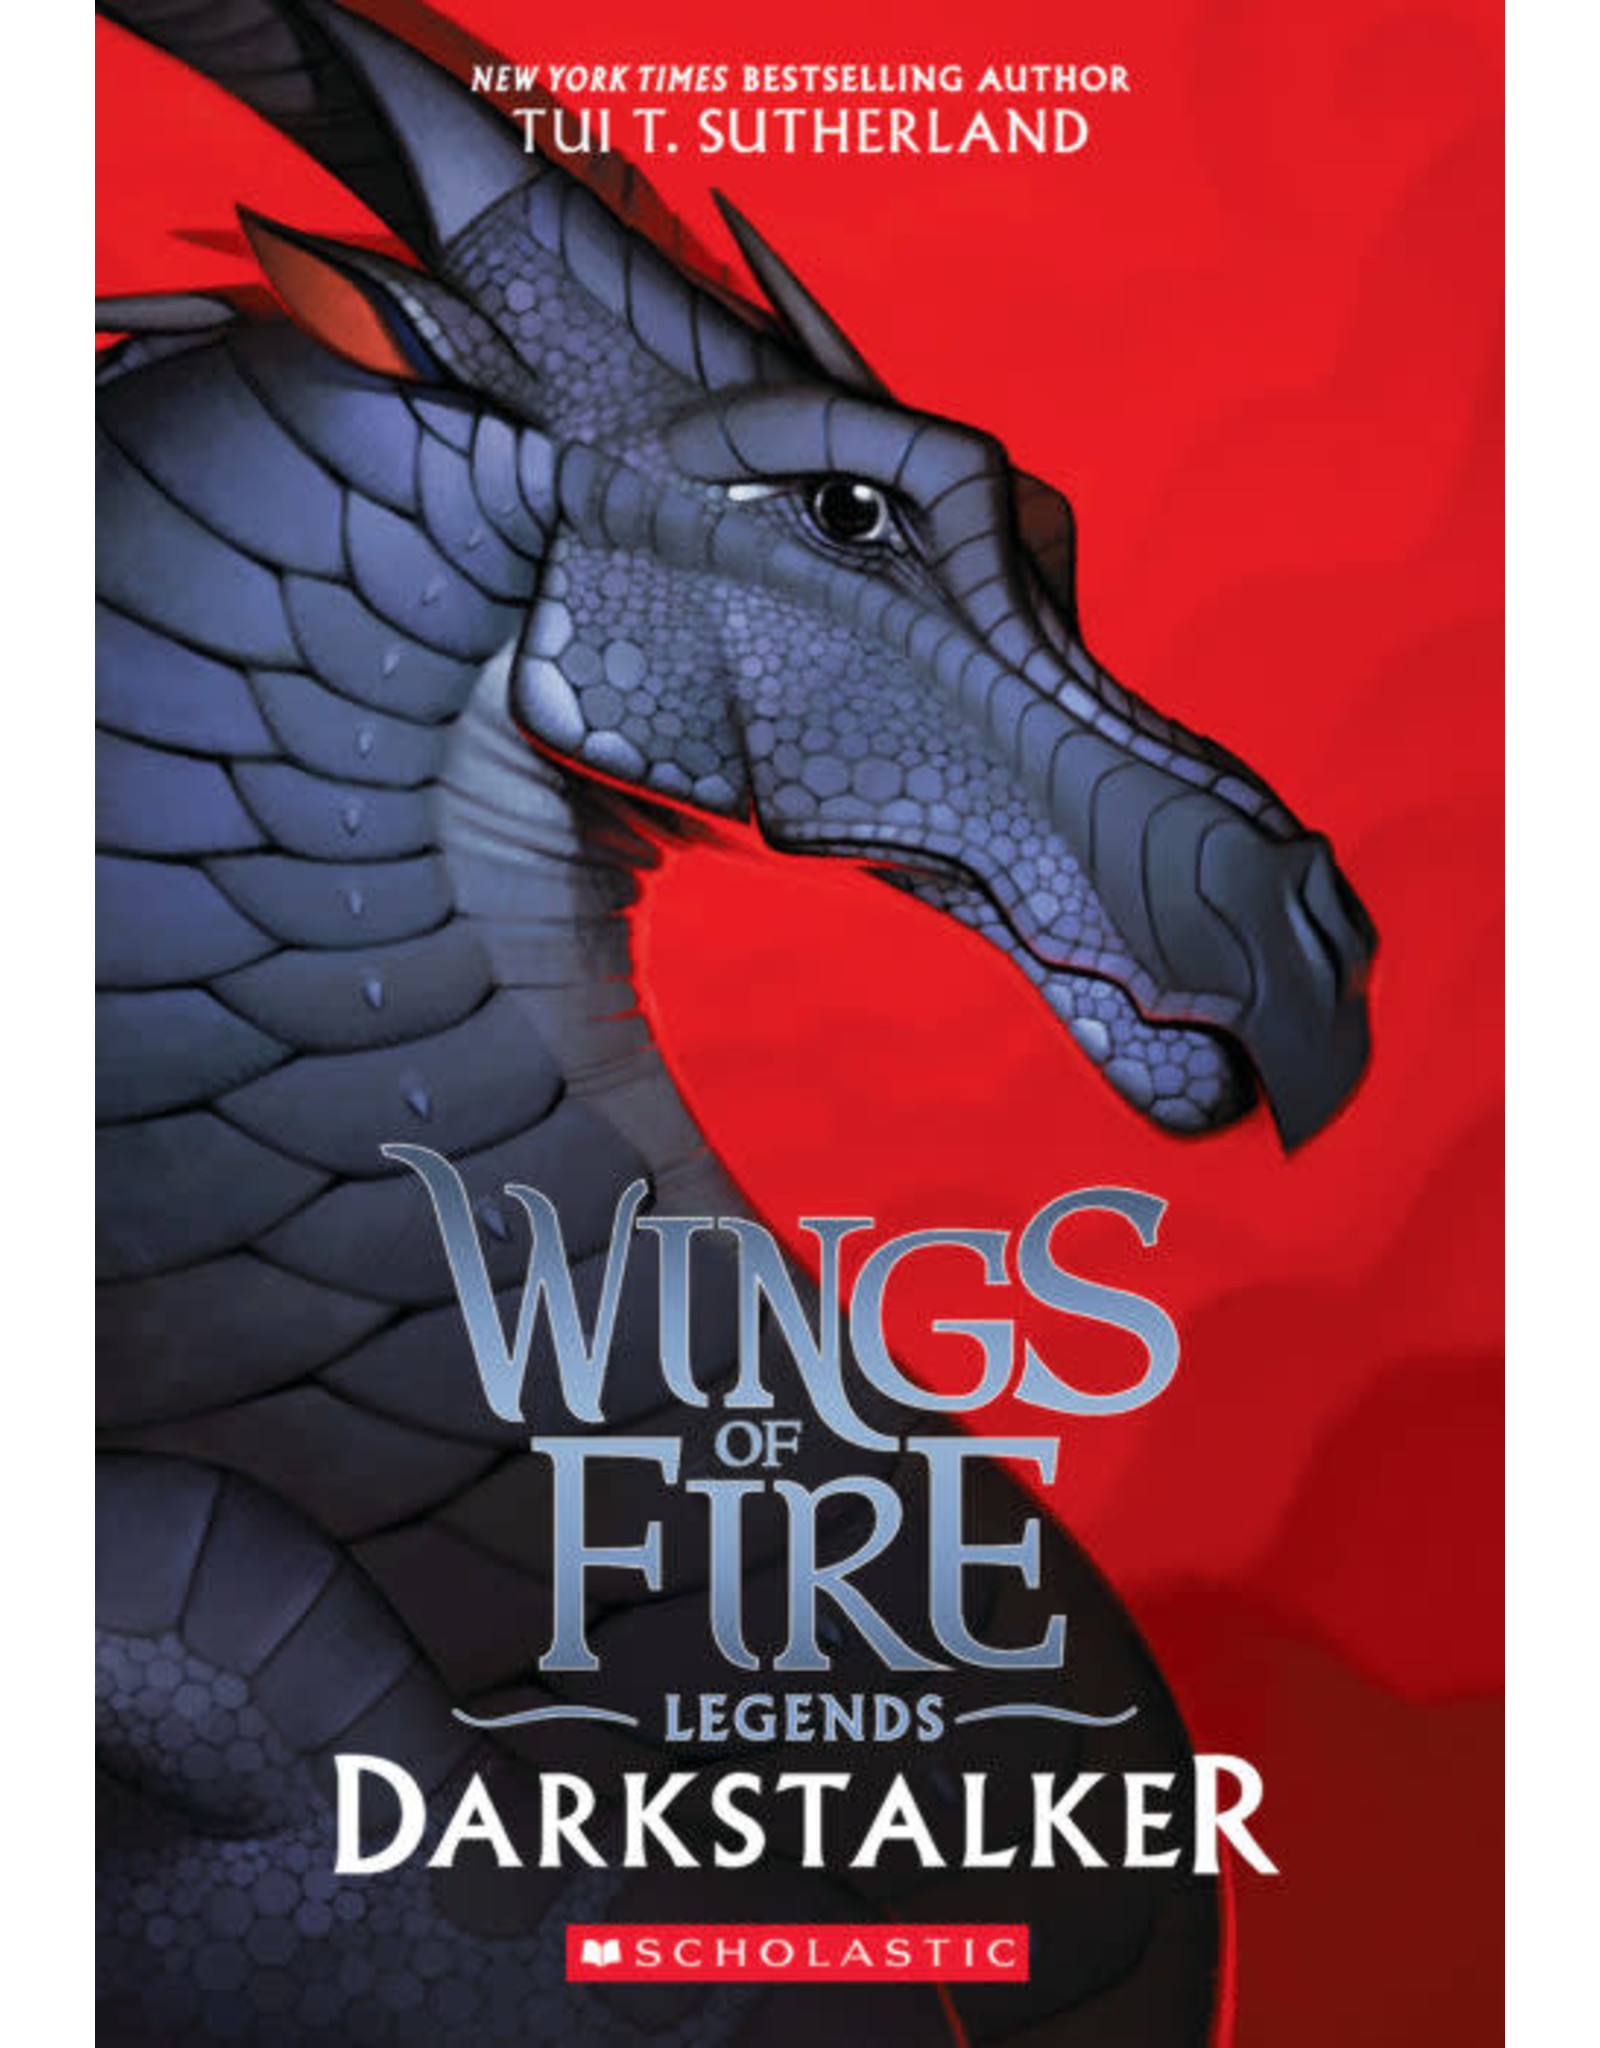 Scholastic Darkstalker (Wings of Fire: Legends)